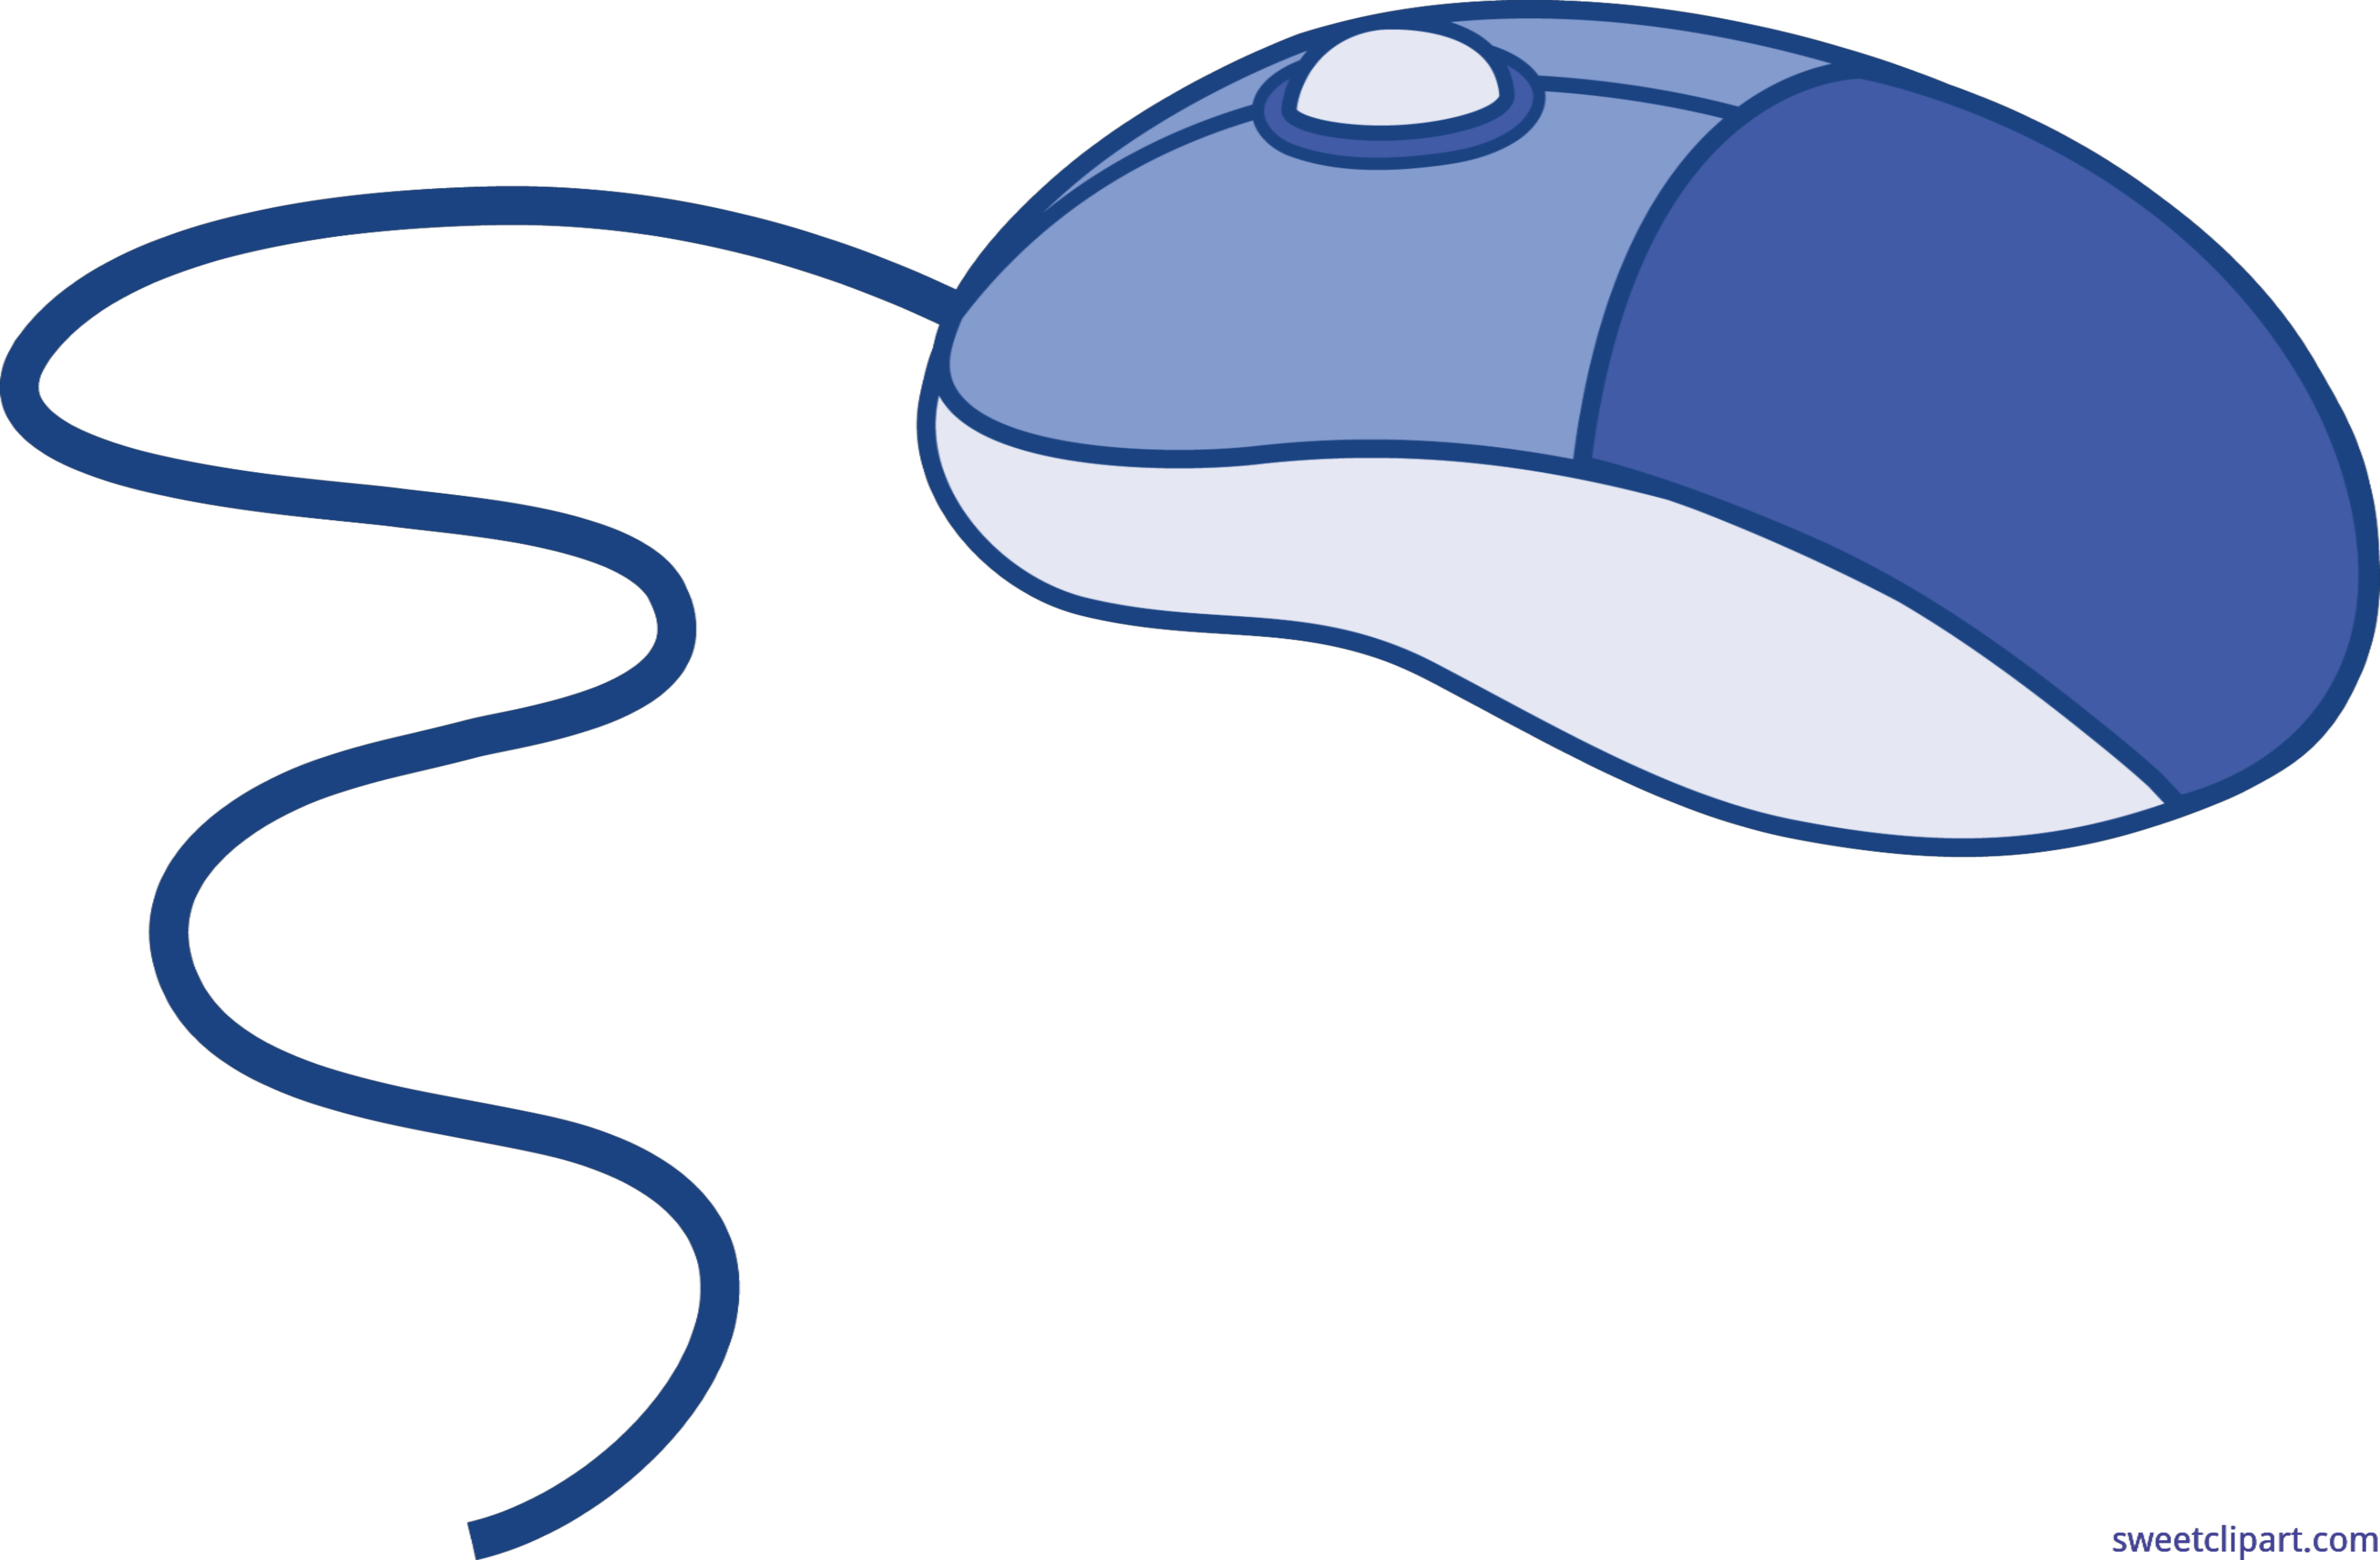 Computer mouse clip art. Computers clipart email